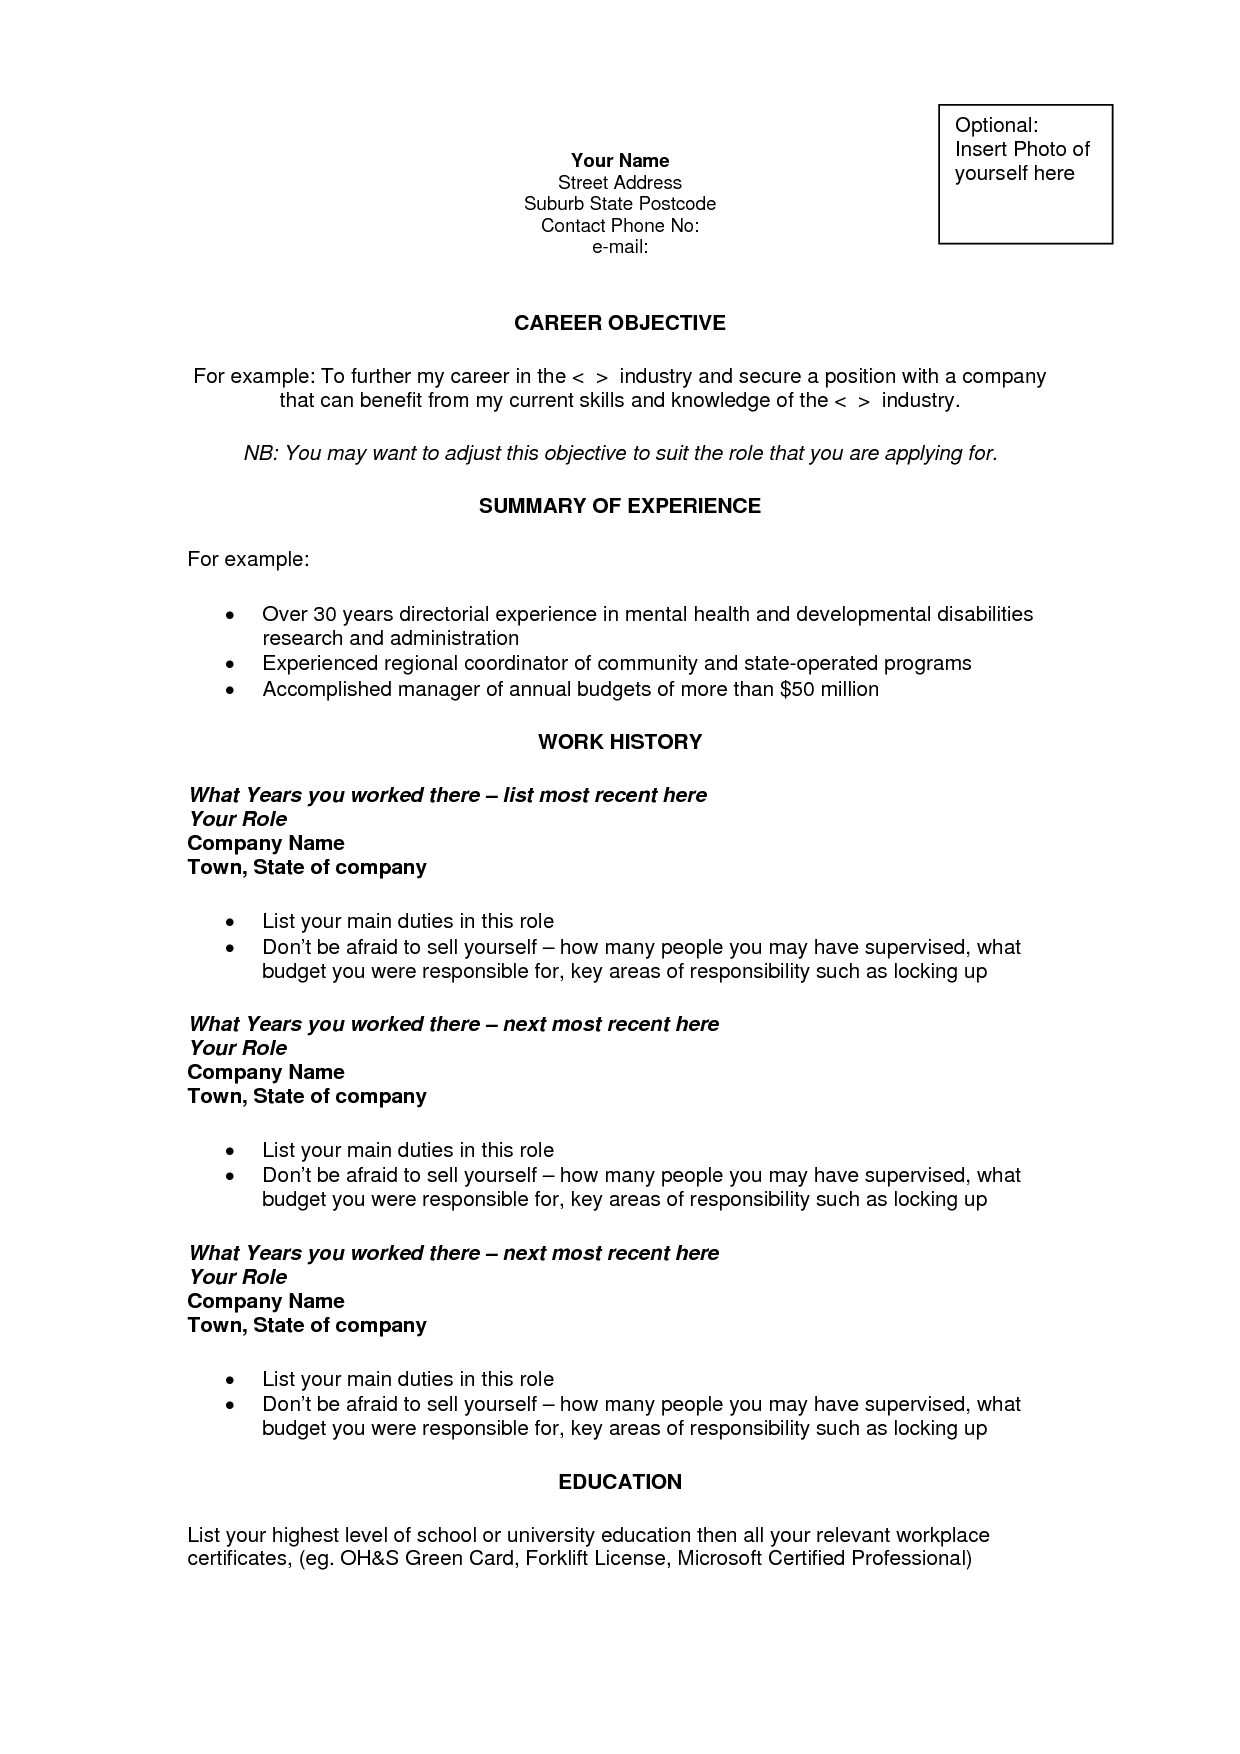 Career Objective On A Resume Images And Summary Experience Sample